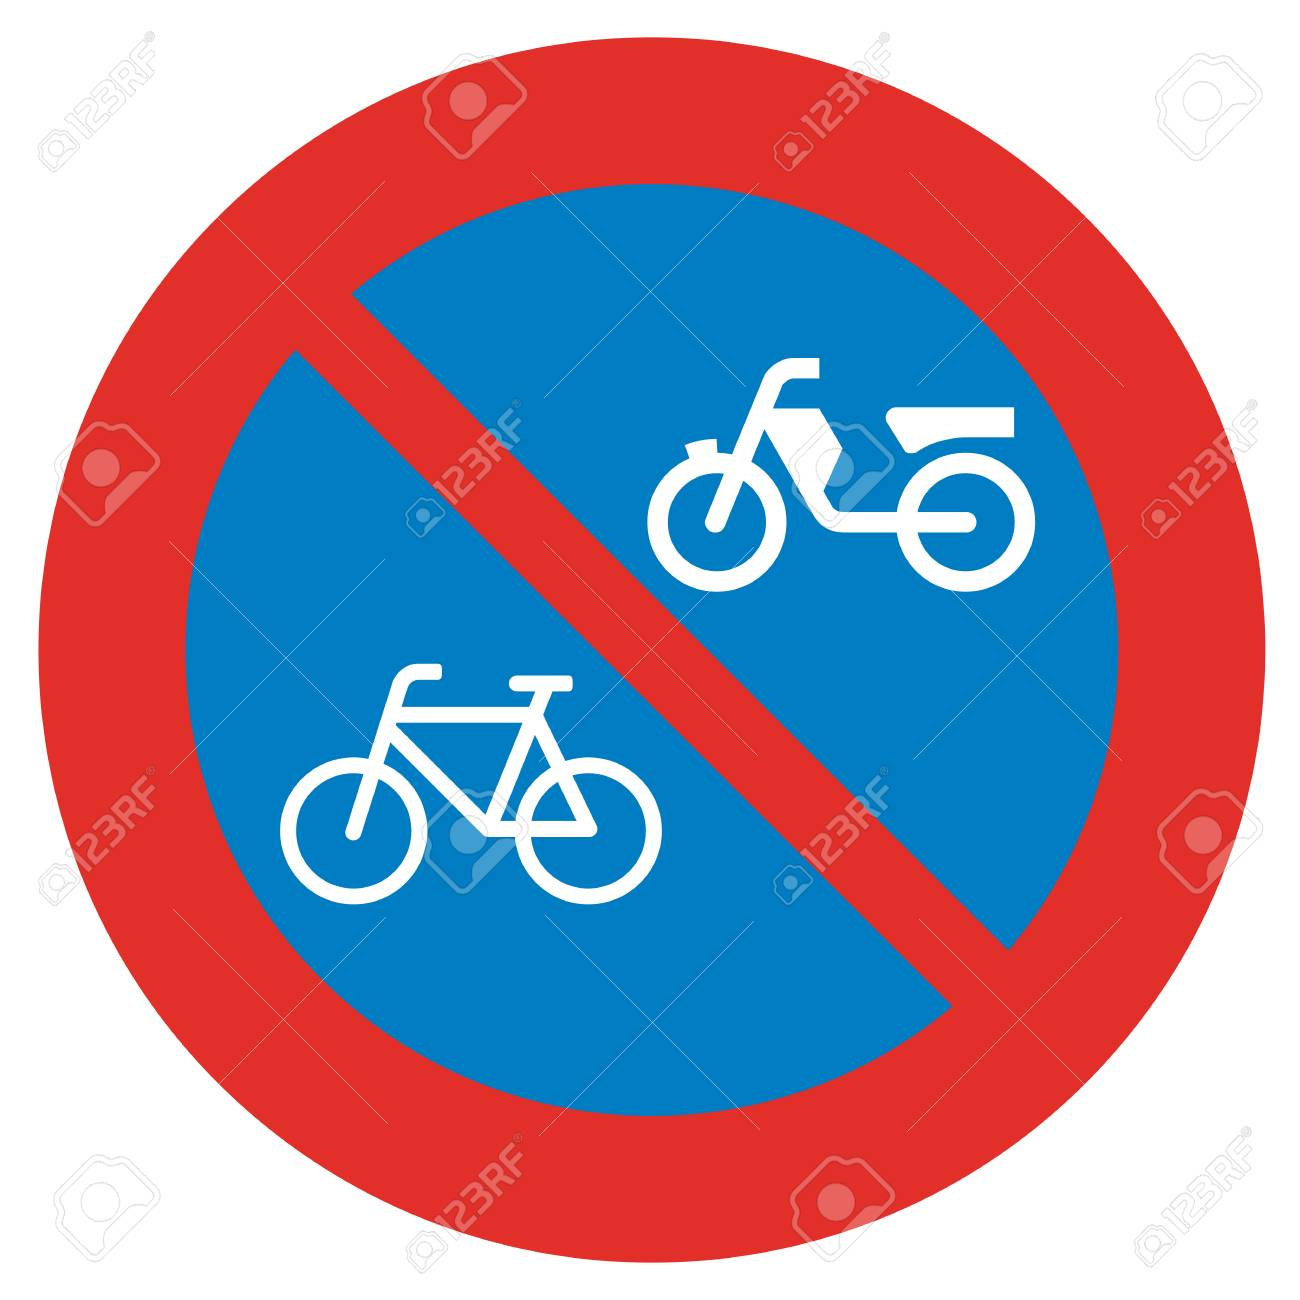 A Dutch Prohibition Sign No Parking Of Mopeds And Bicycles Stock